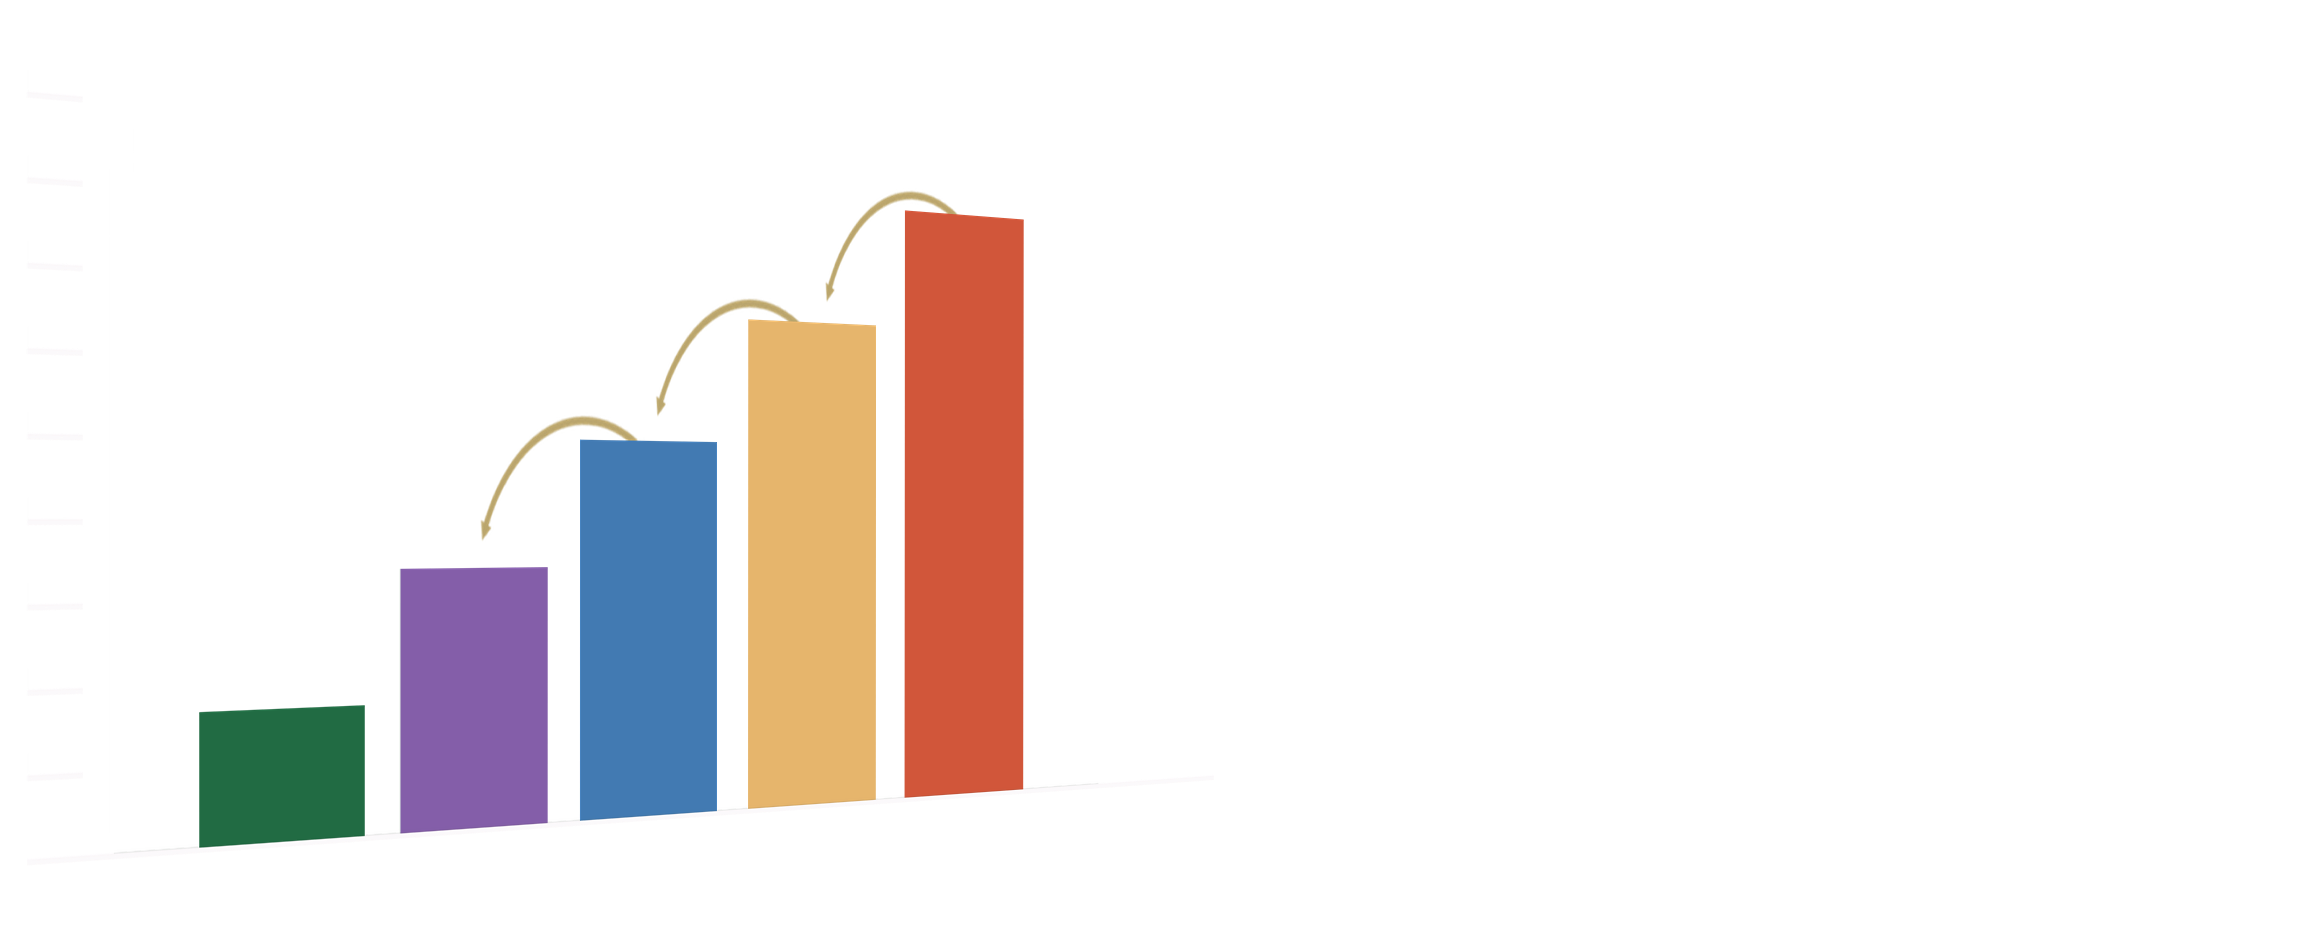 Saving time and eliminating waste